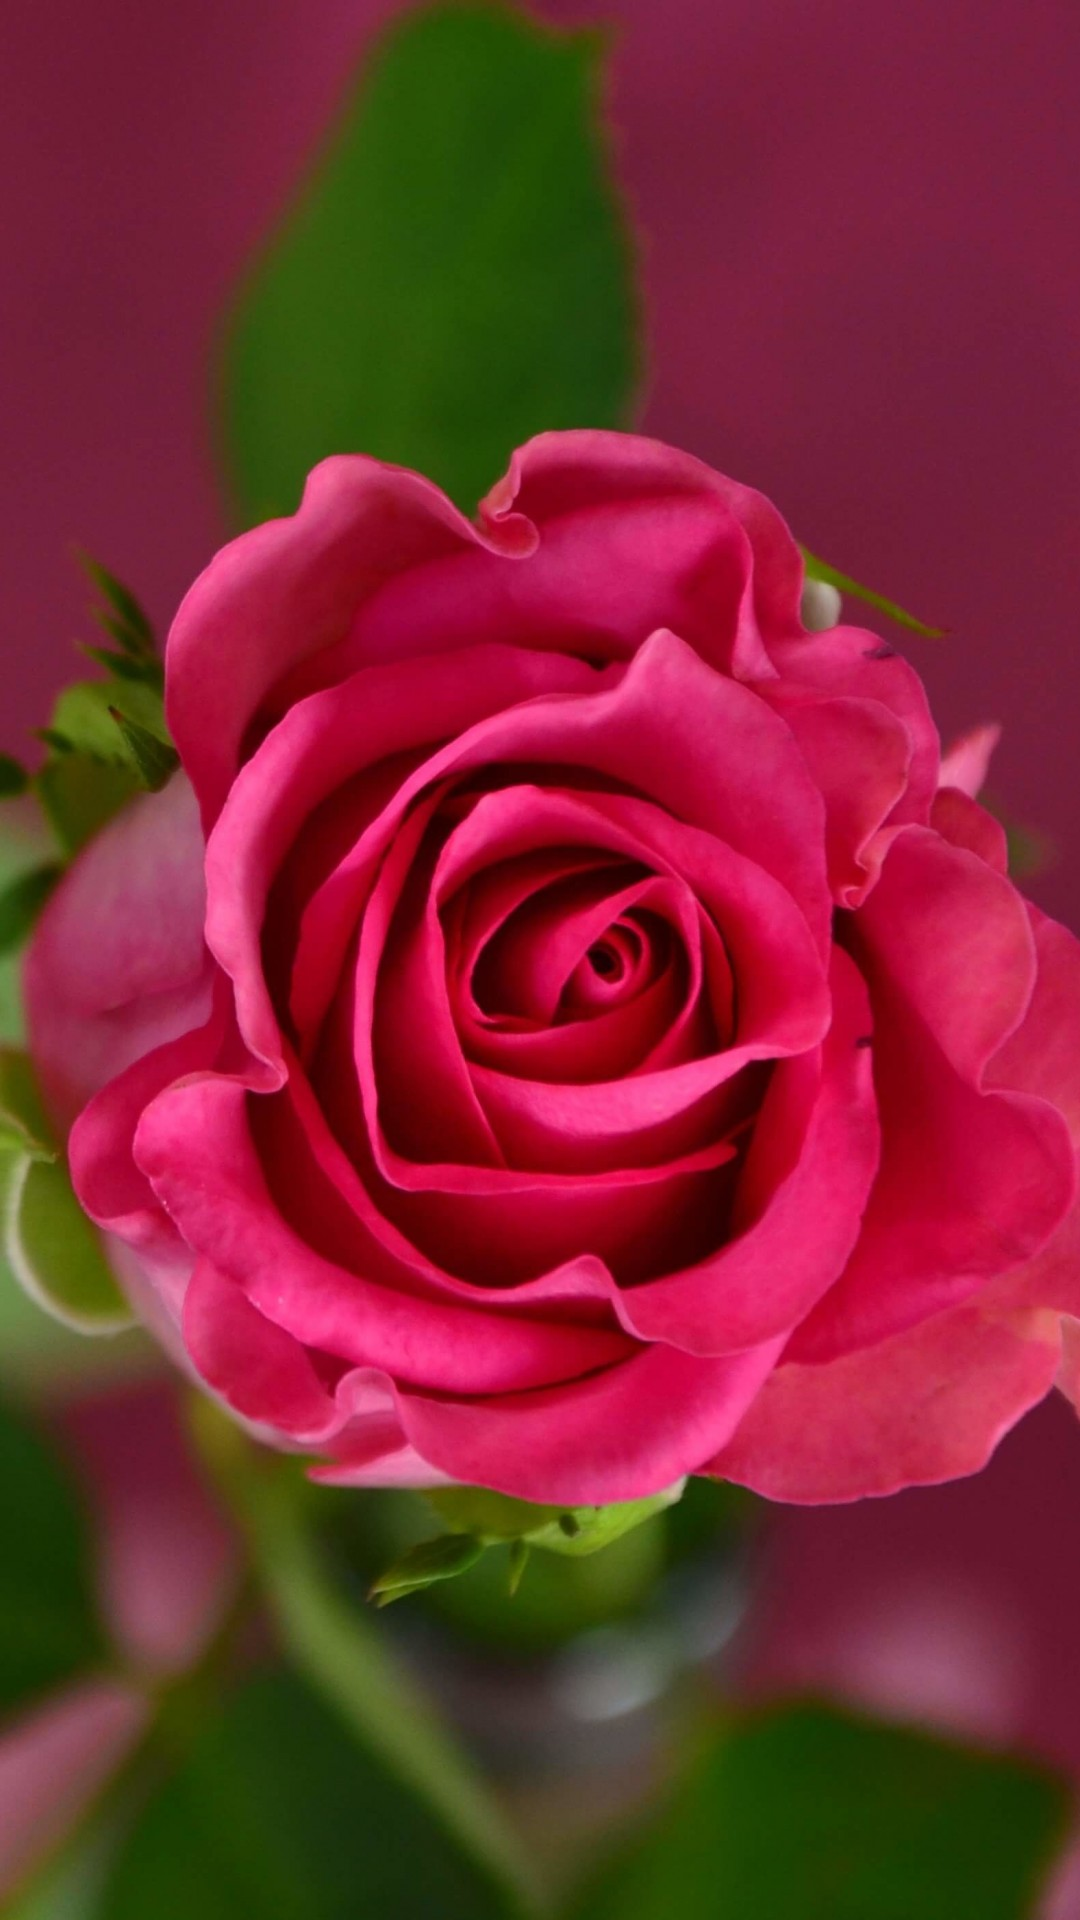 Single Pink Rose Wallpaper for SAMSUNG Galaxy S5